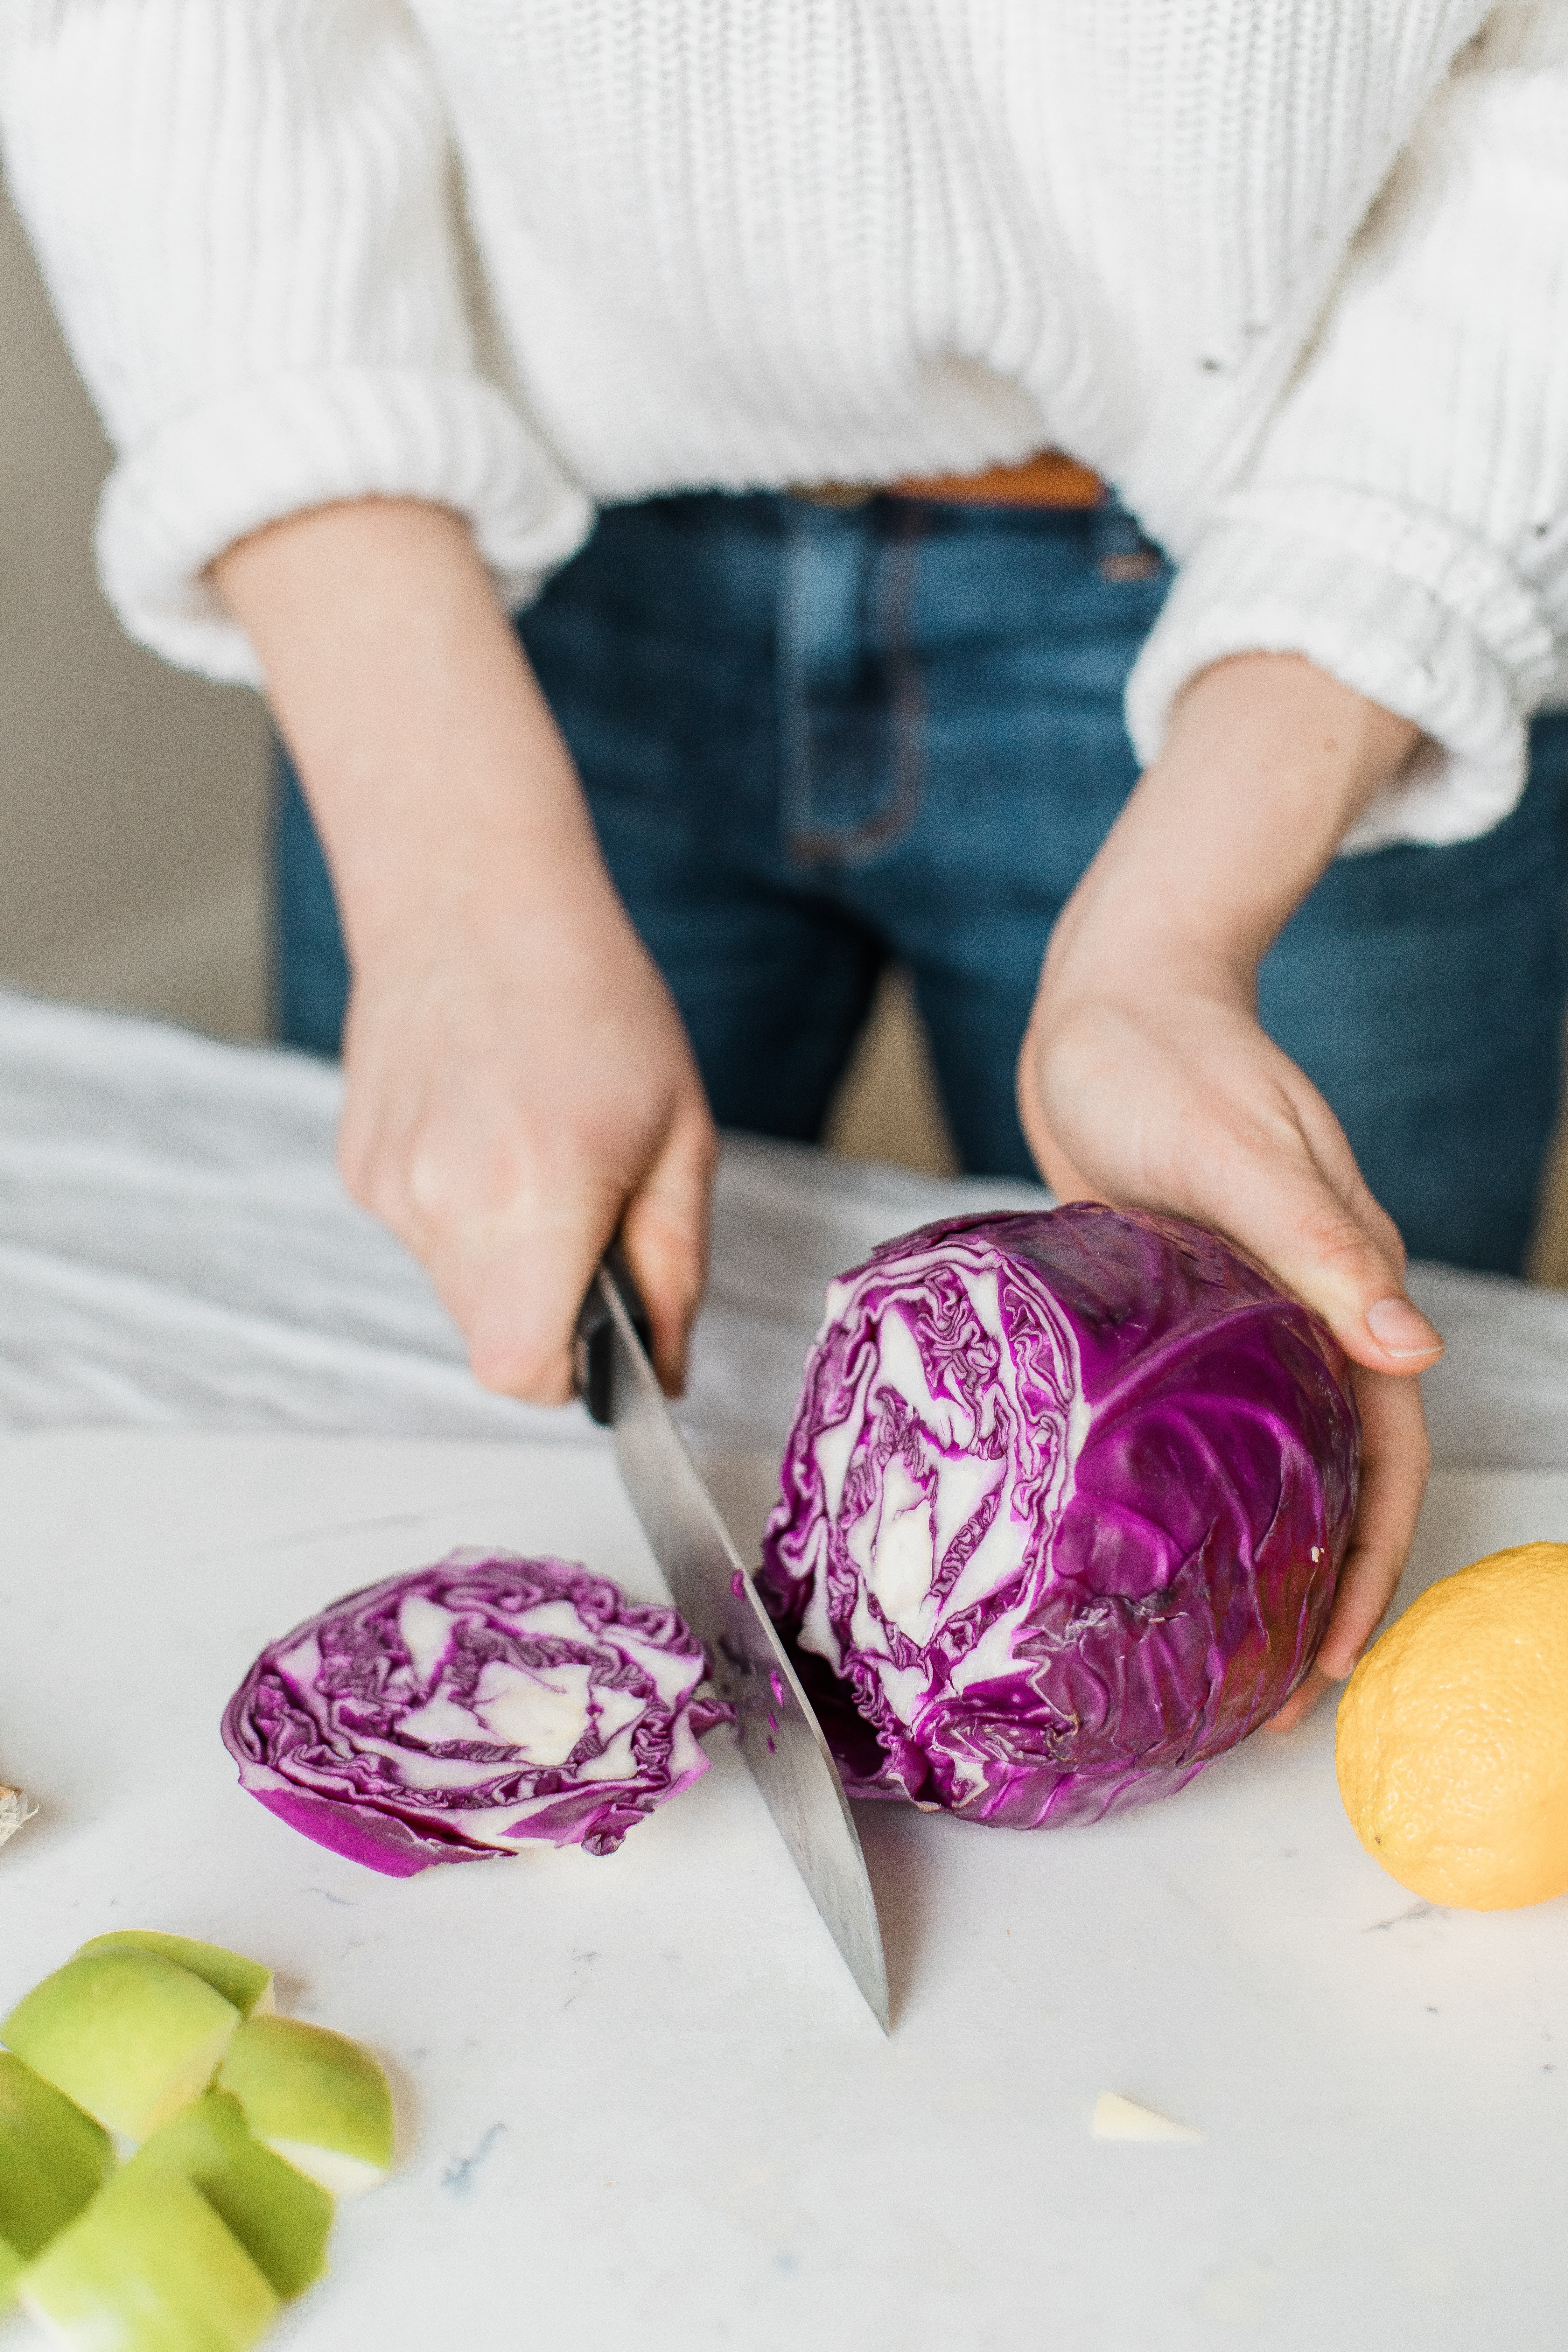 Woman cuts red cabbage in the kitchen